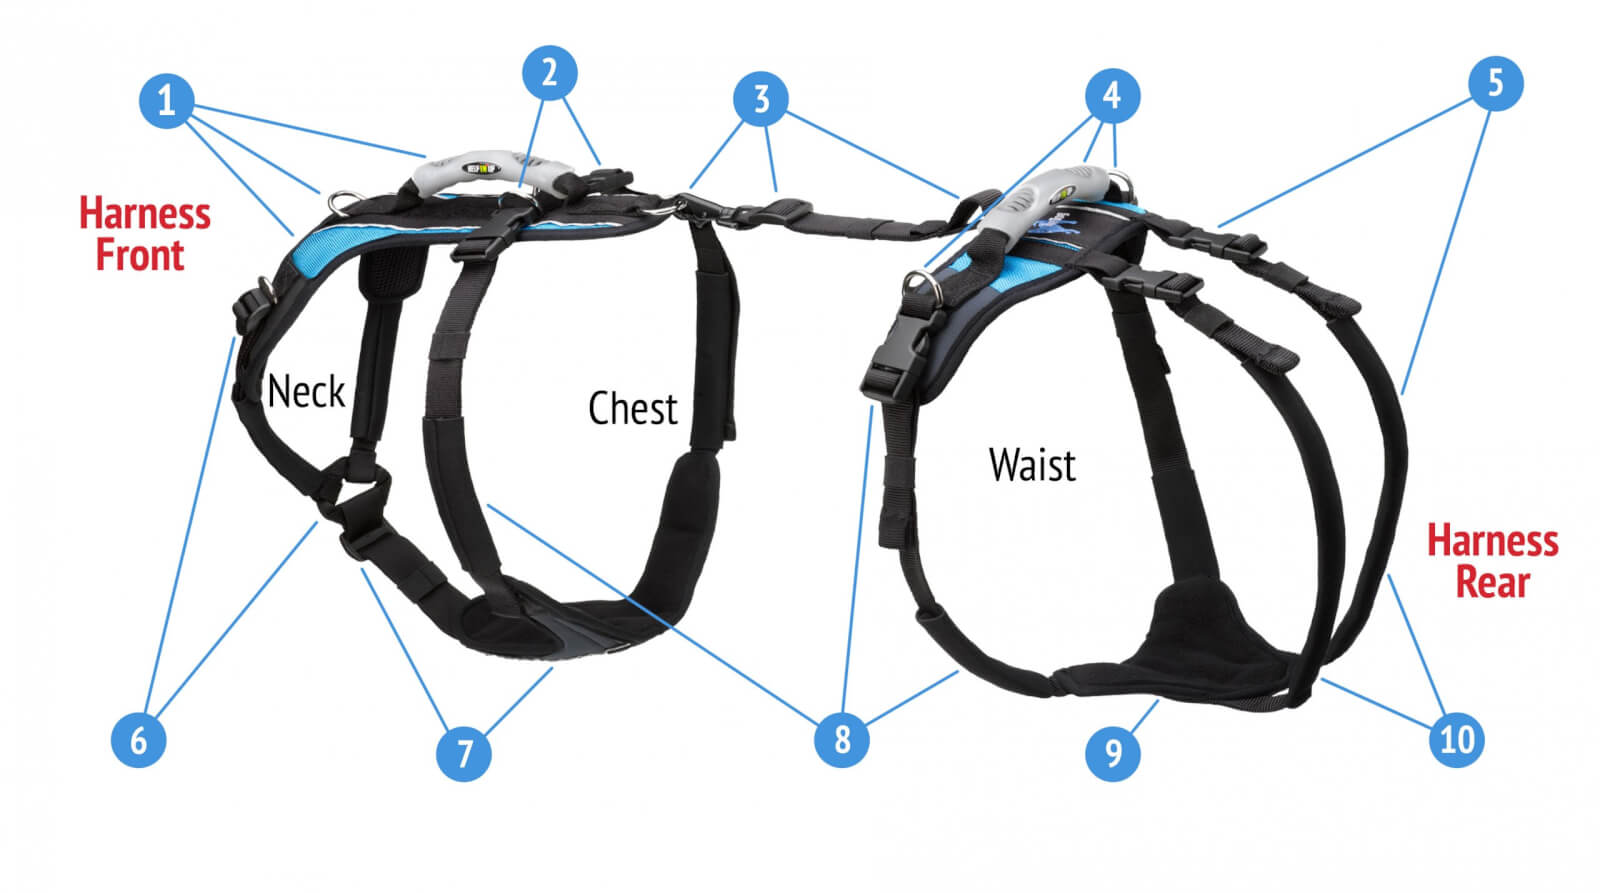 Help 'Em Up Harness Features Diagram